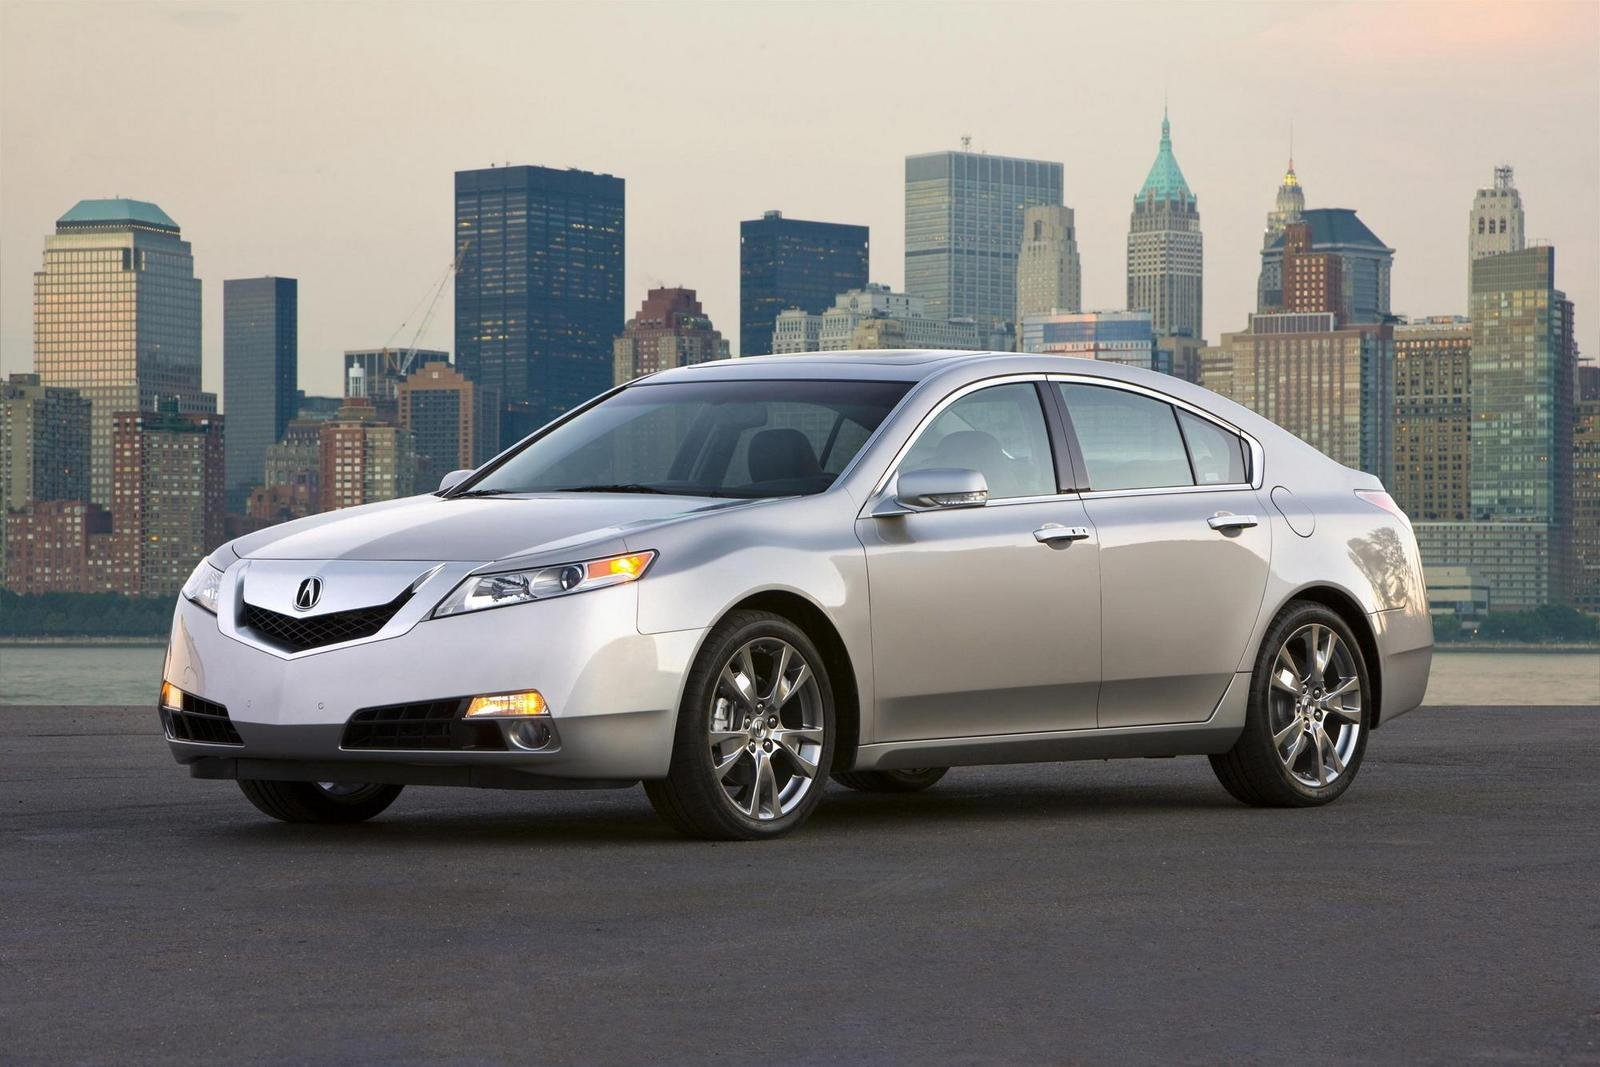 2010 acura tl picture 326159 car review top speed. Black Bedroom Furniture Sets. Home Design Ideas